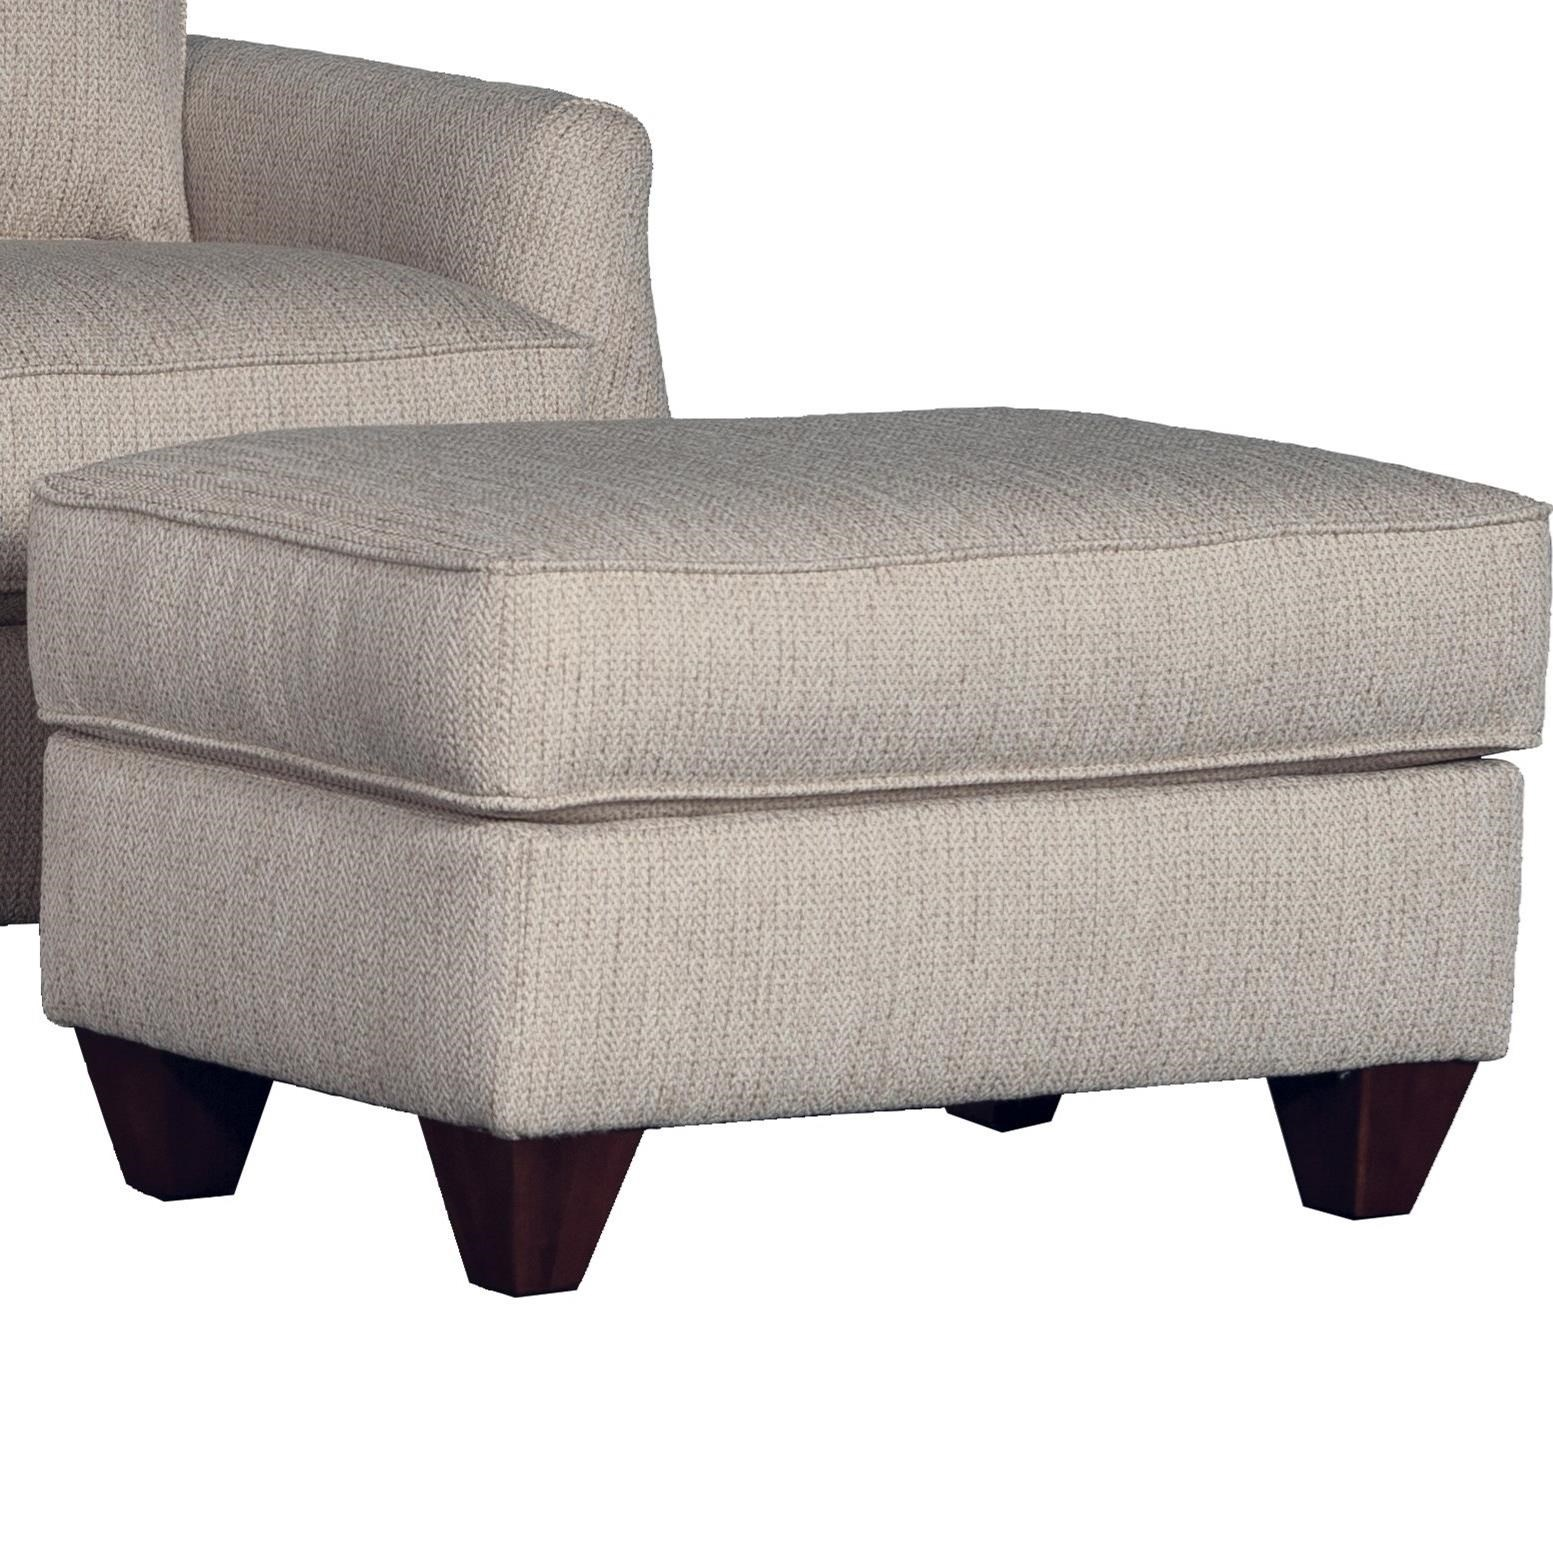 6200 Ottoman by Mayo at Wilcox Furniture